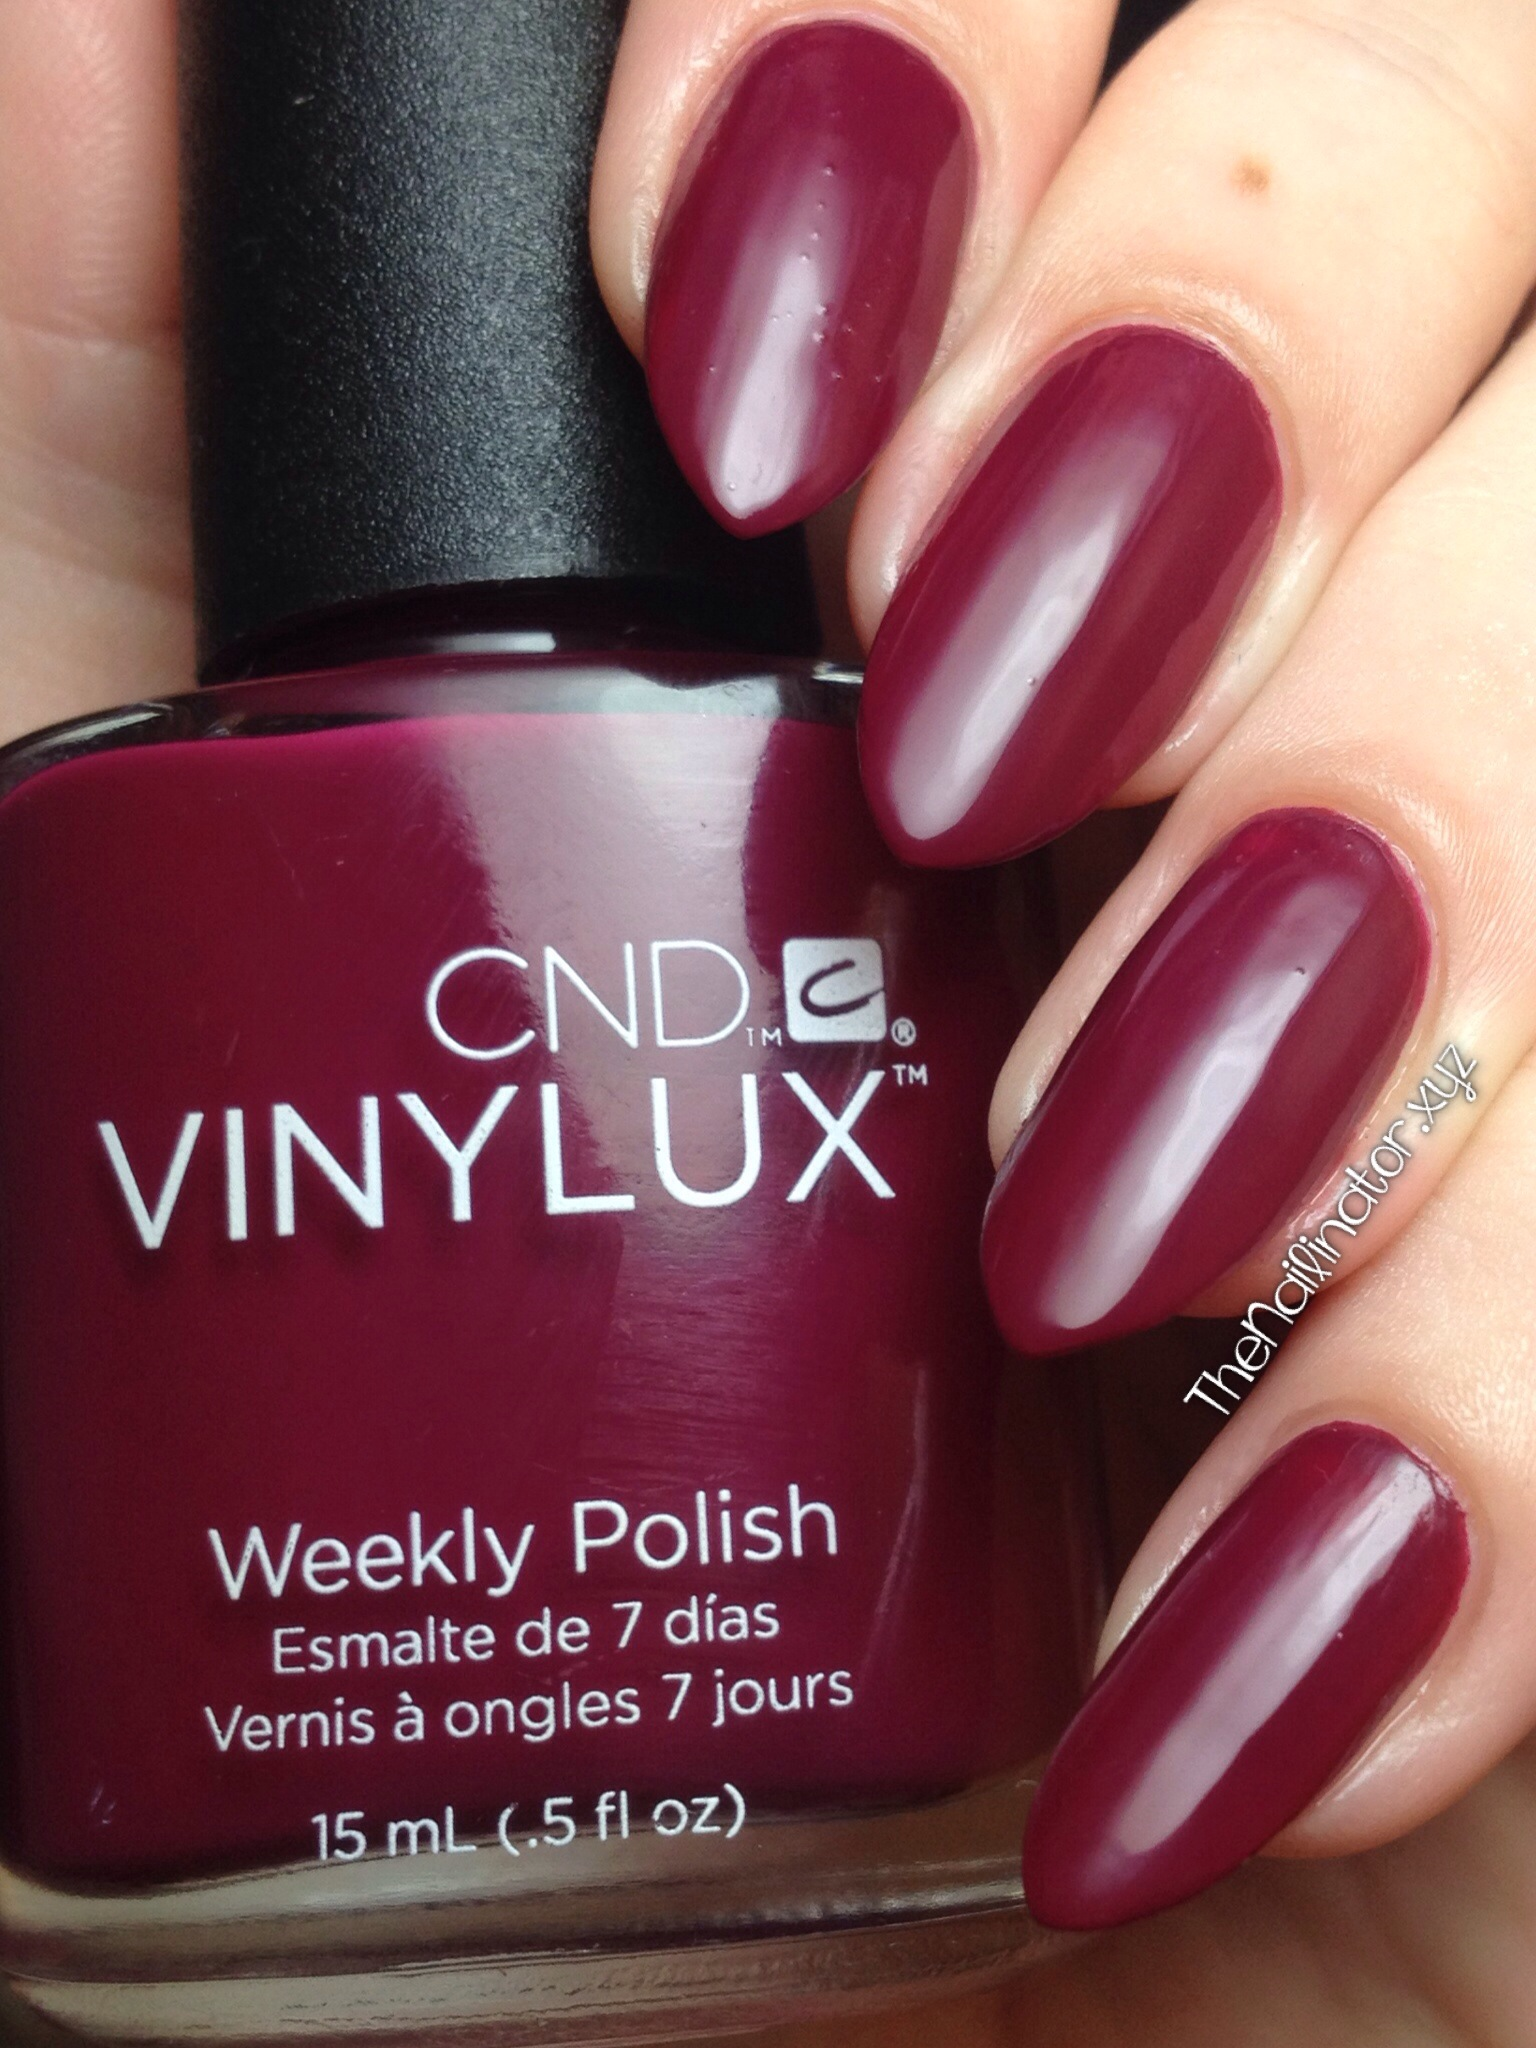 Cnd Vinylux Weekly Polish Review The Nailinator